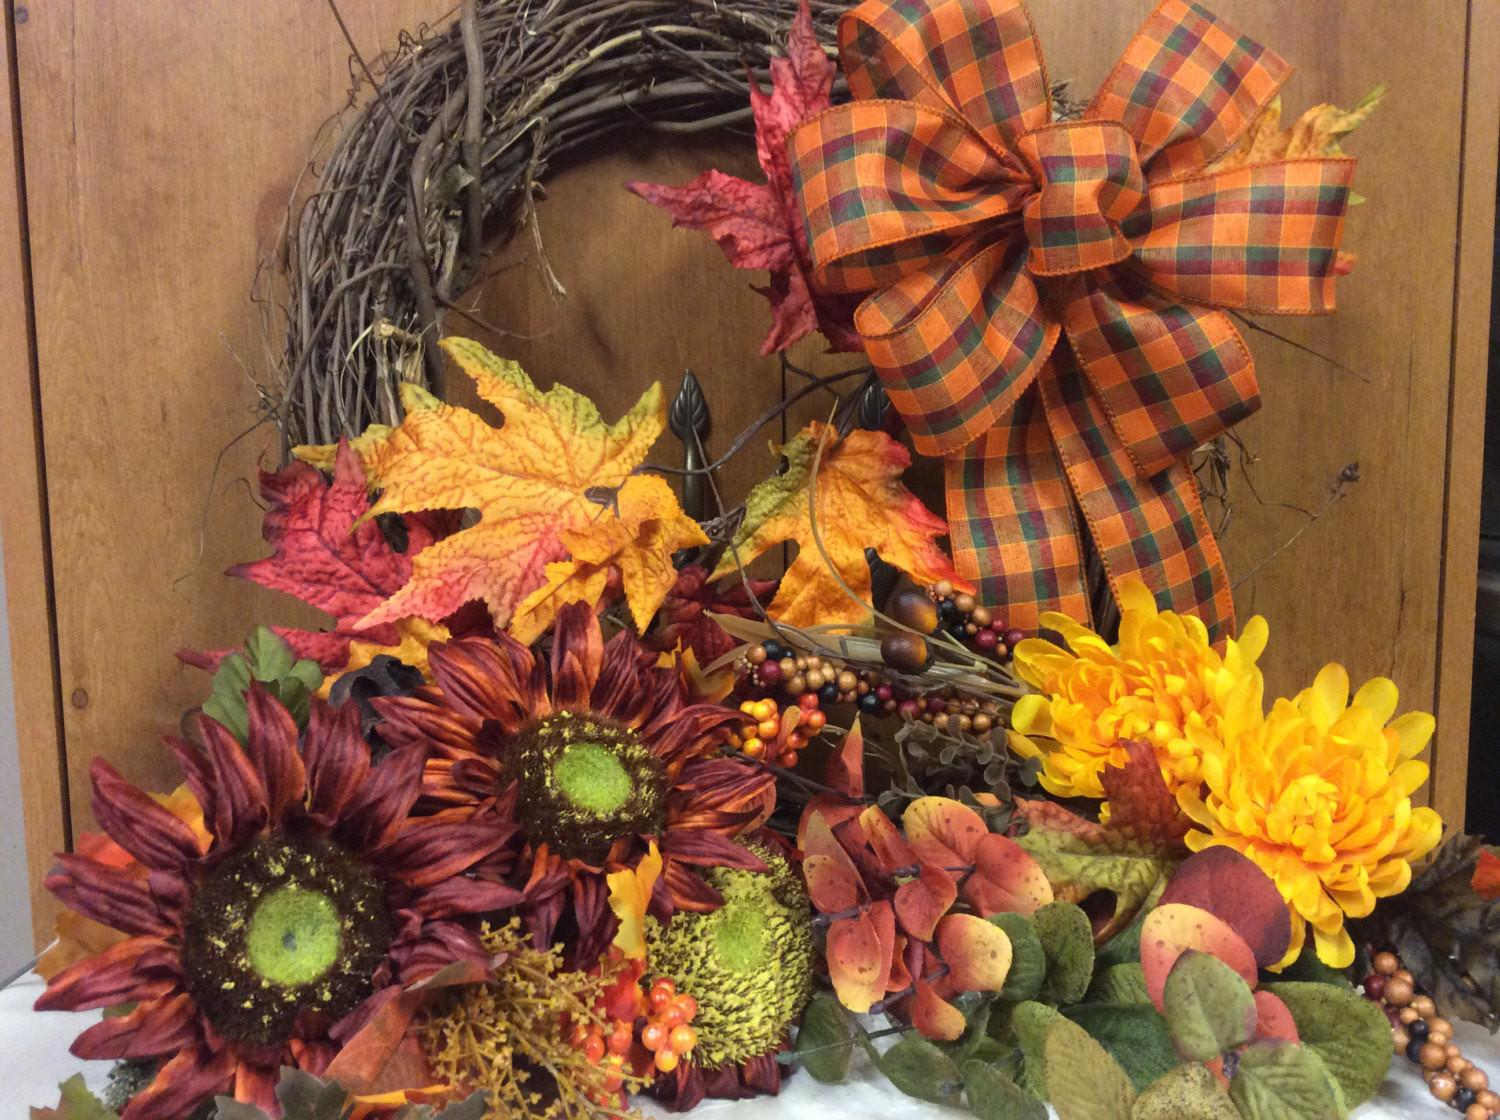 Sale Diy Fall Floral Wreath Kit Autumn Front